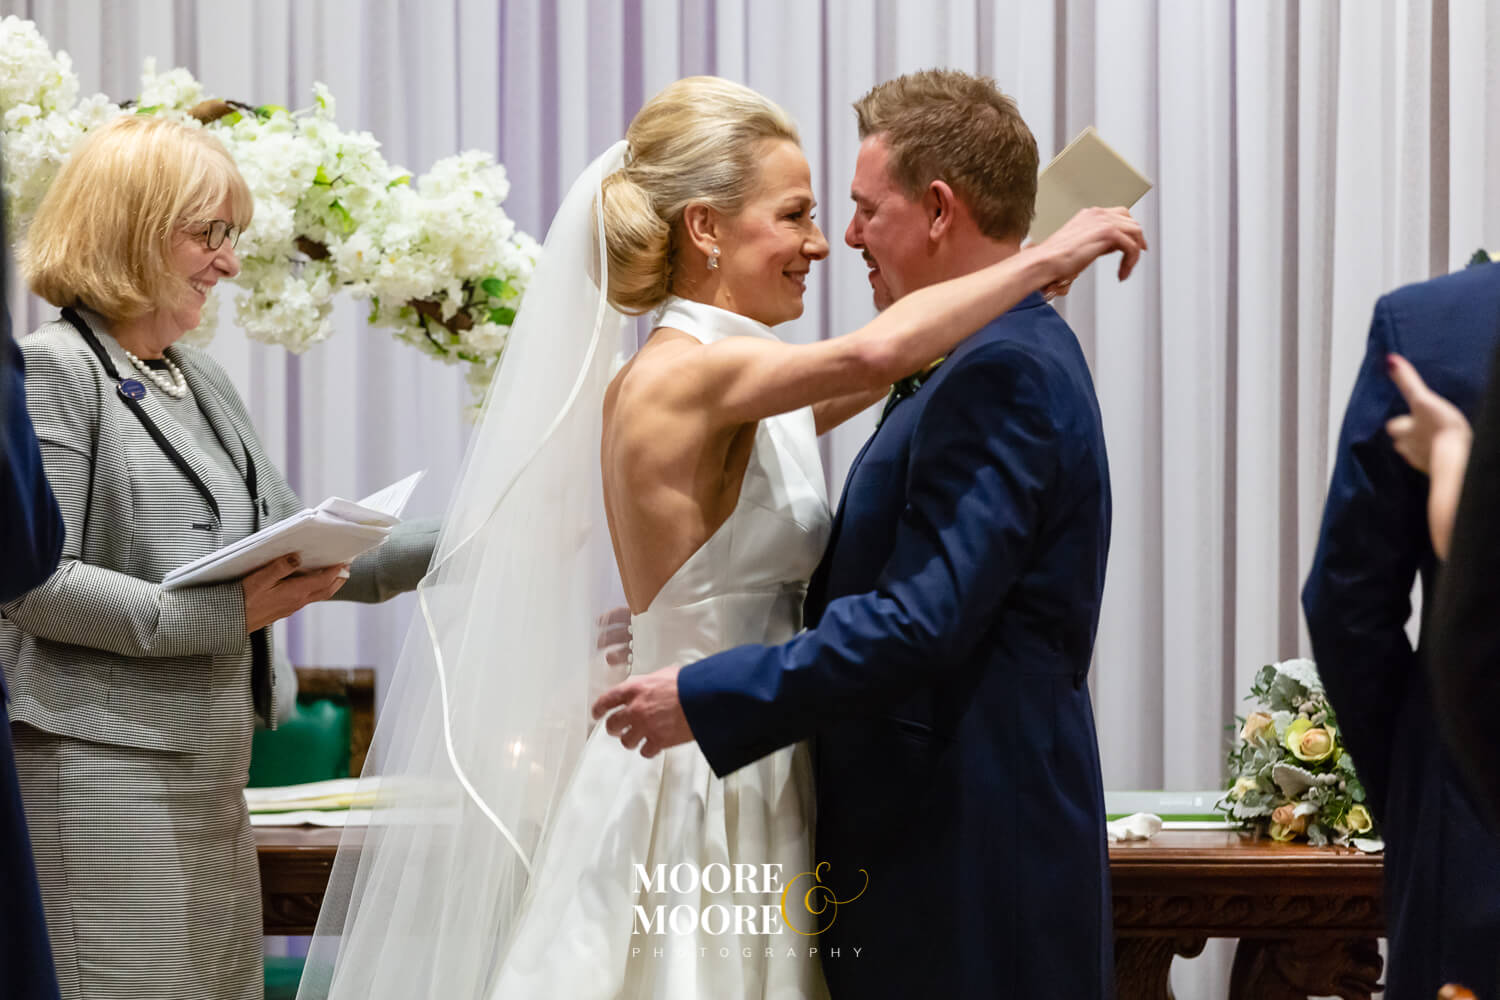 Perfect moments at wedding ceremony. Wedding Photos by Moore & Moore Photography, Hampshire